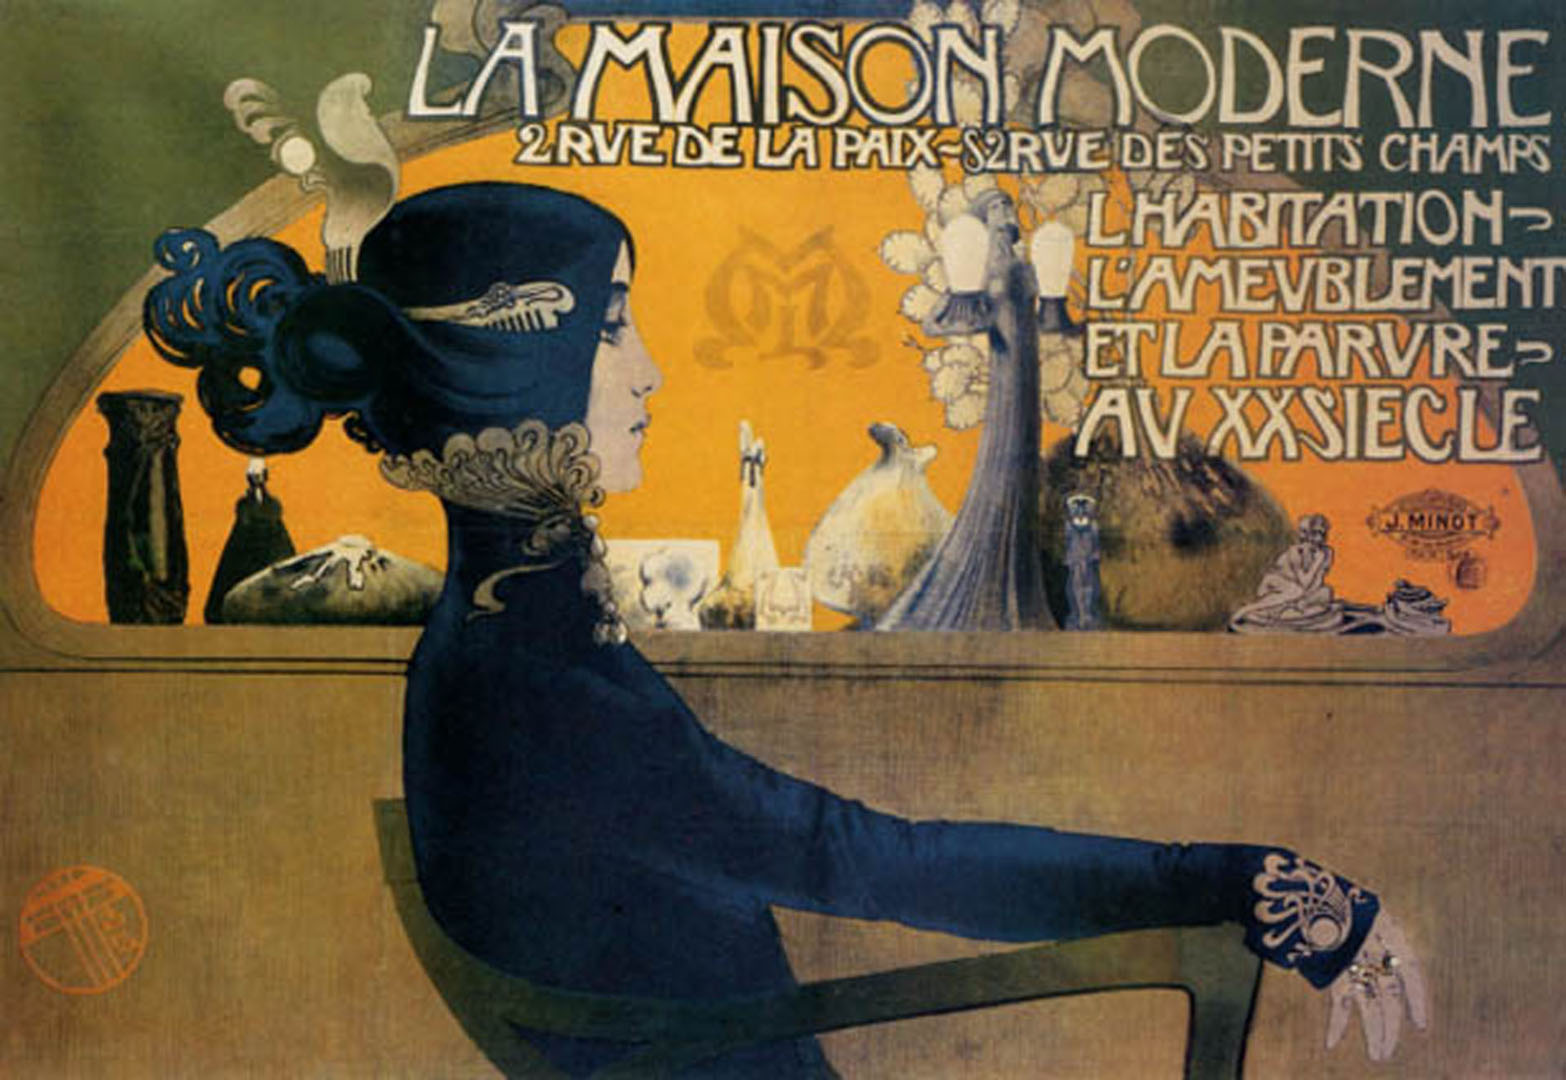 la maison moderne vintage french posters. Black Bedroom Furniture Sets. Home Design Ideas